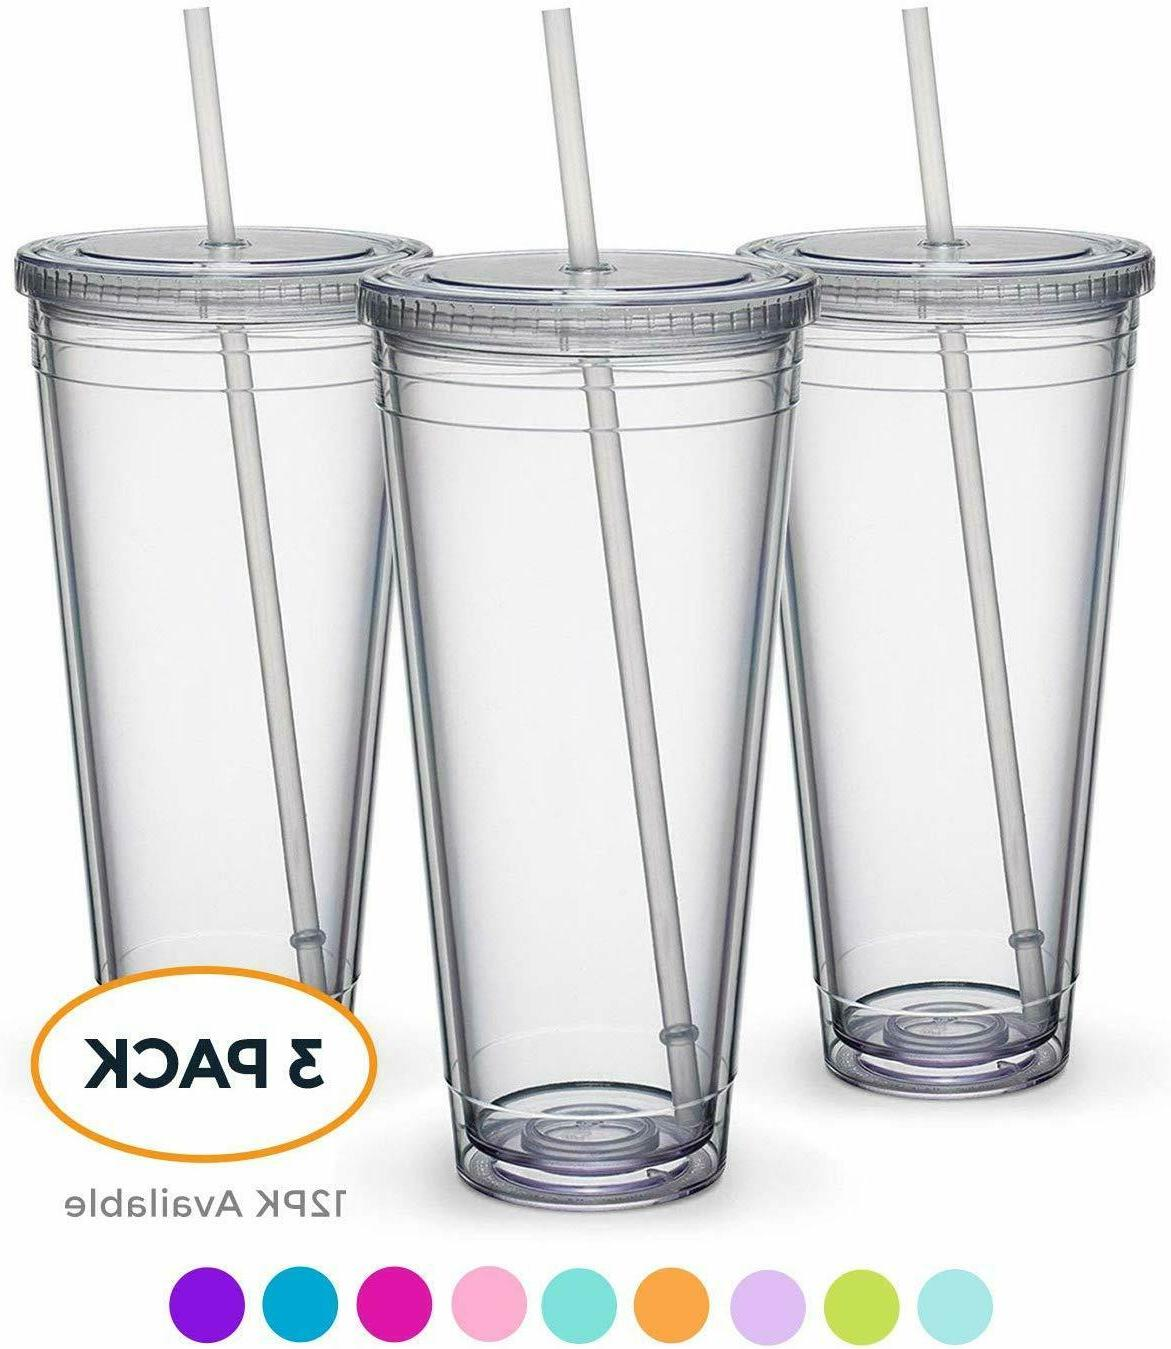 maars insulated travel tumblers 32 oz double